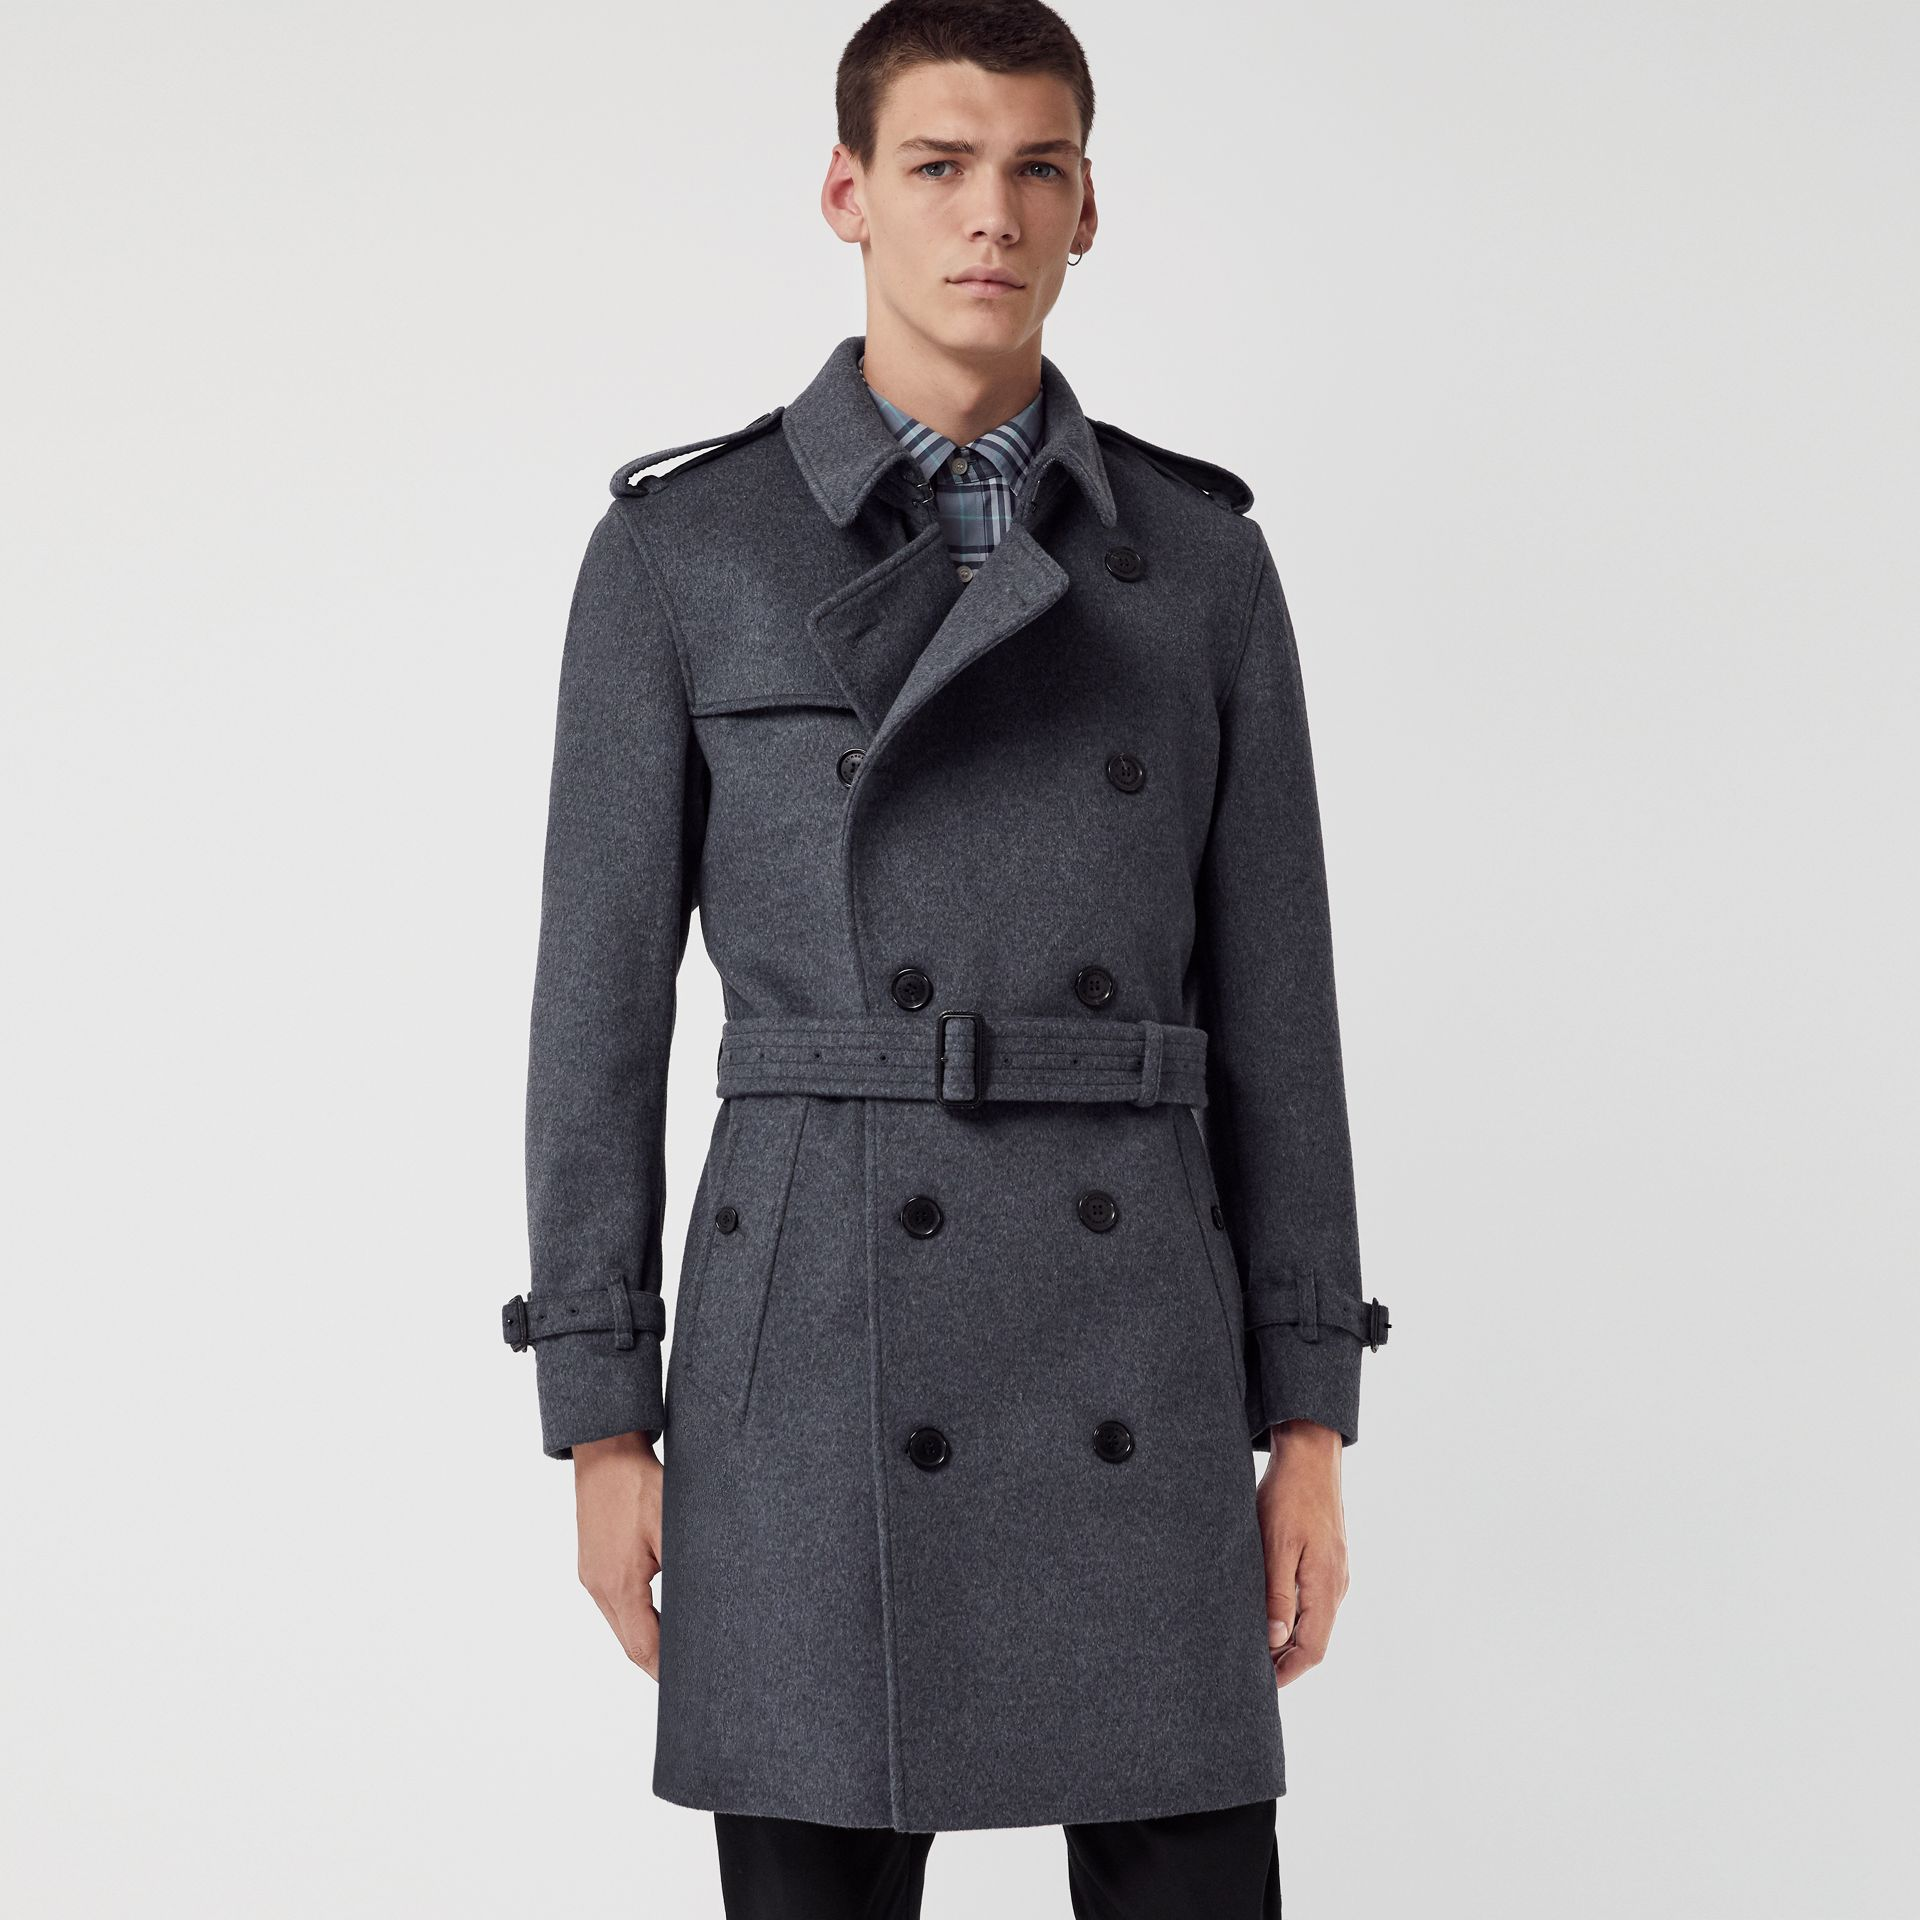 Wool Cashmere Trench Coat in Pewter Melange - Men | Burberry - gallery image 5